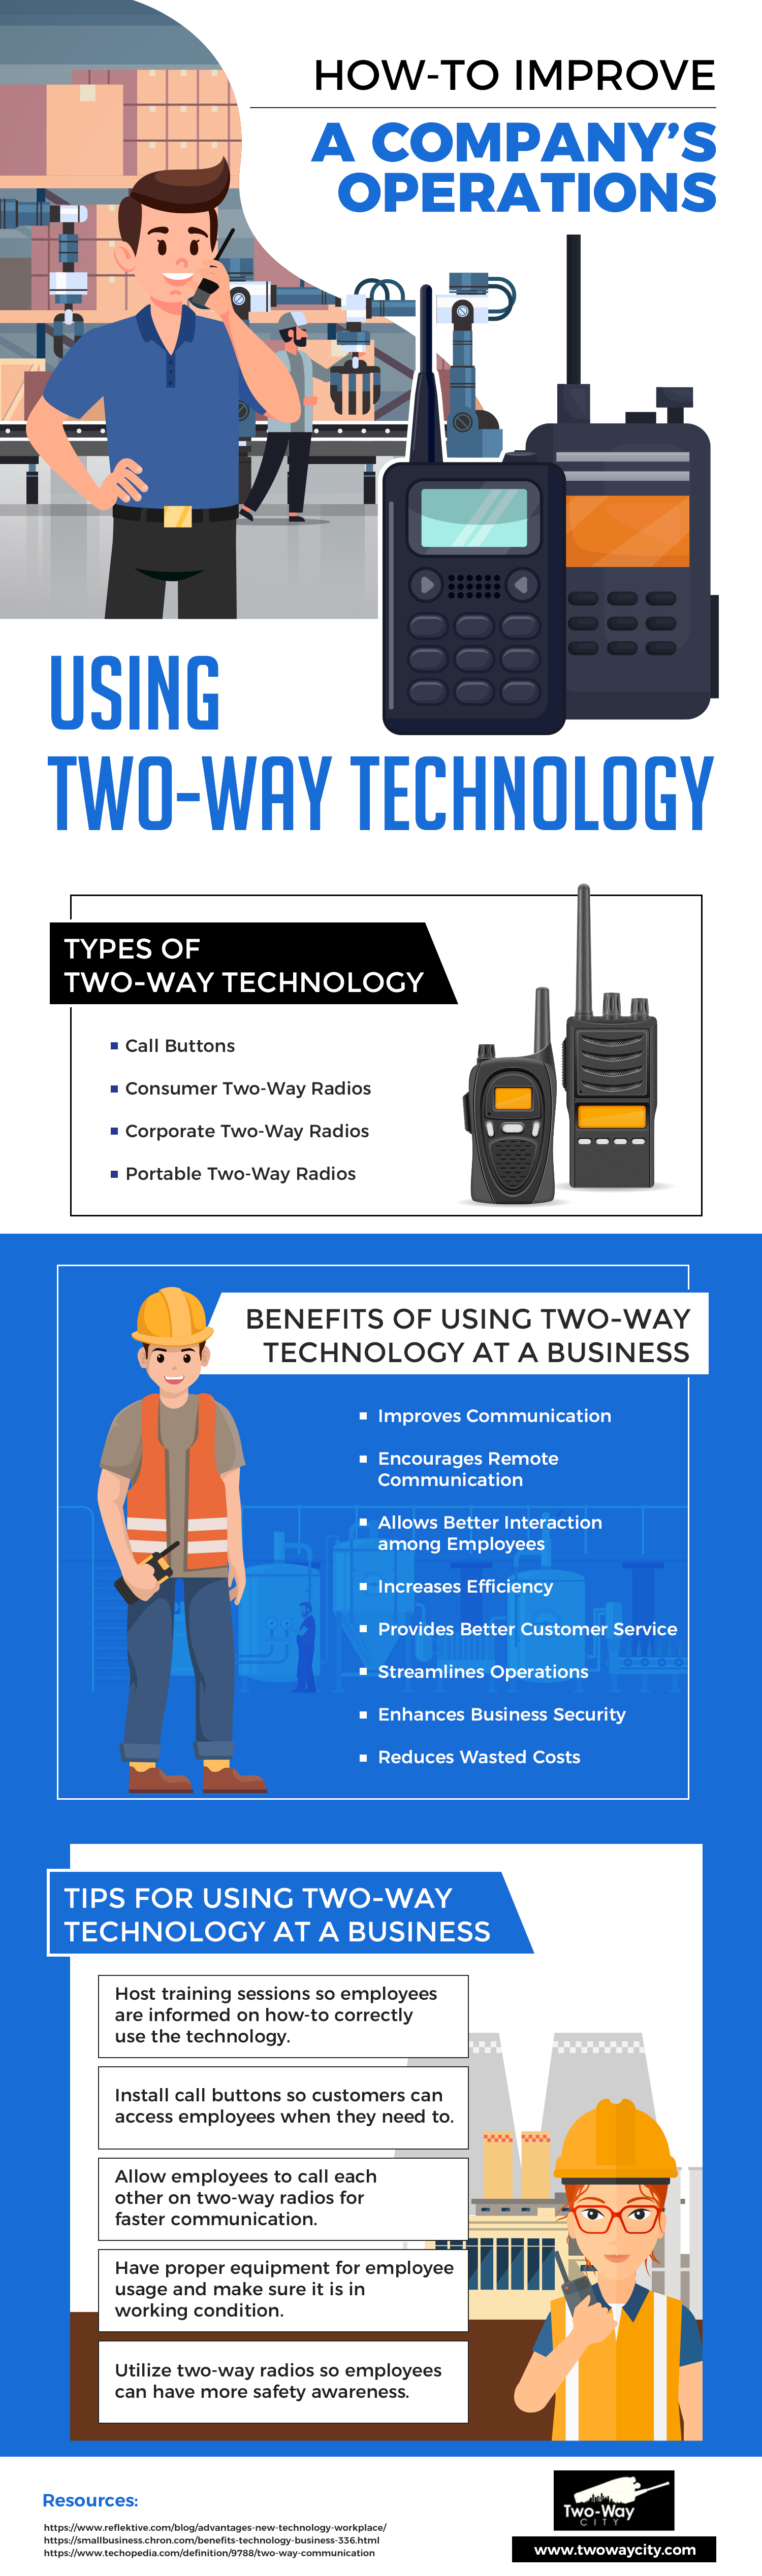 how to improve a companys operations using two way technology